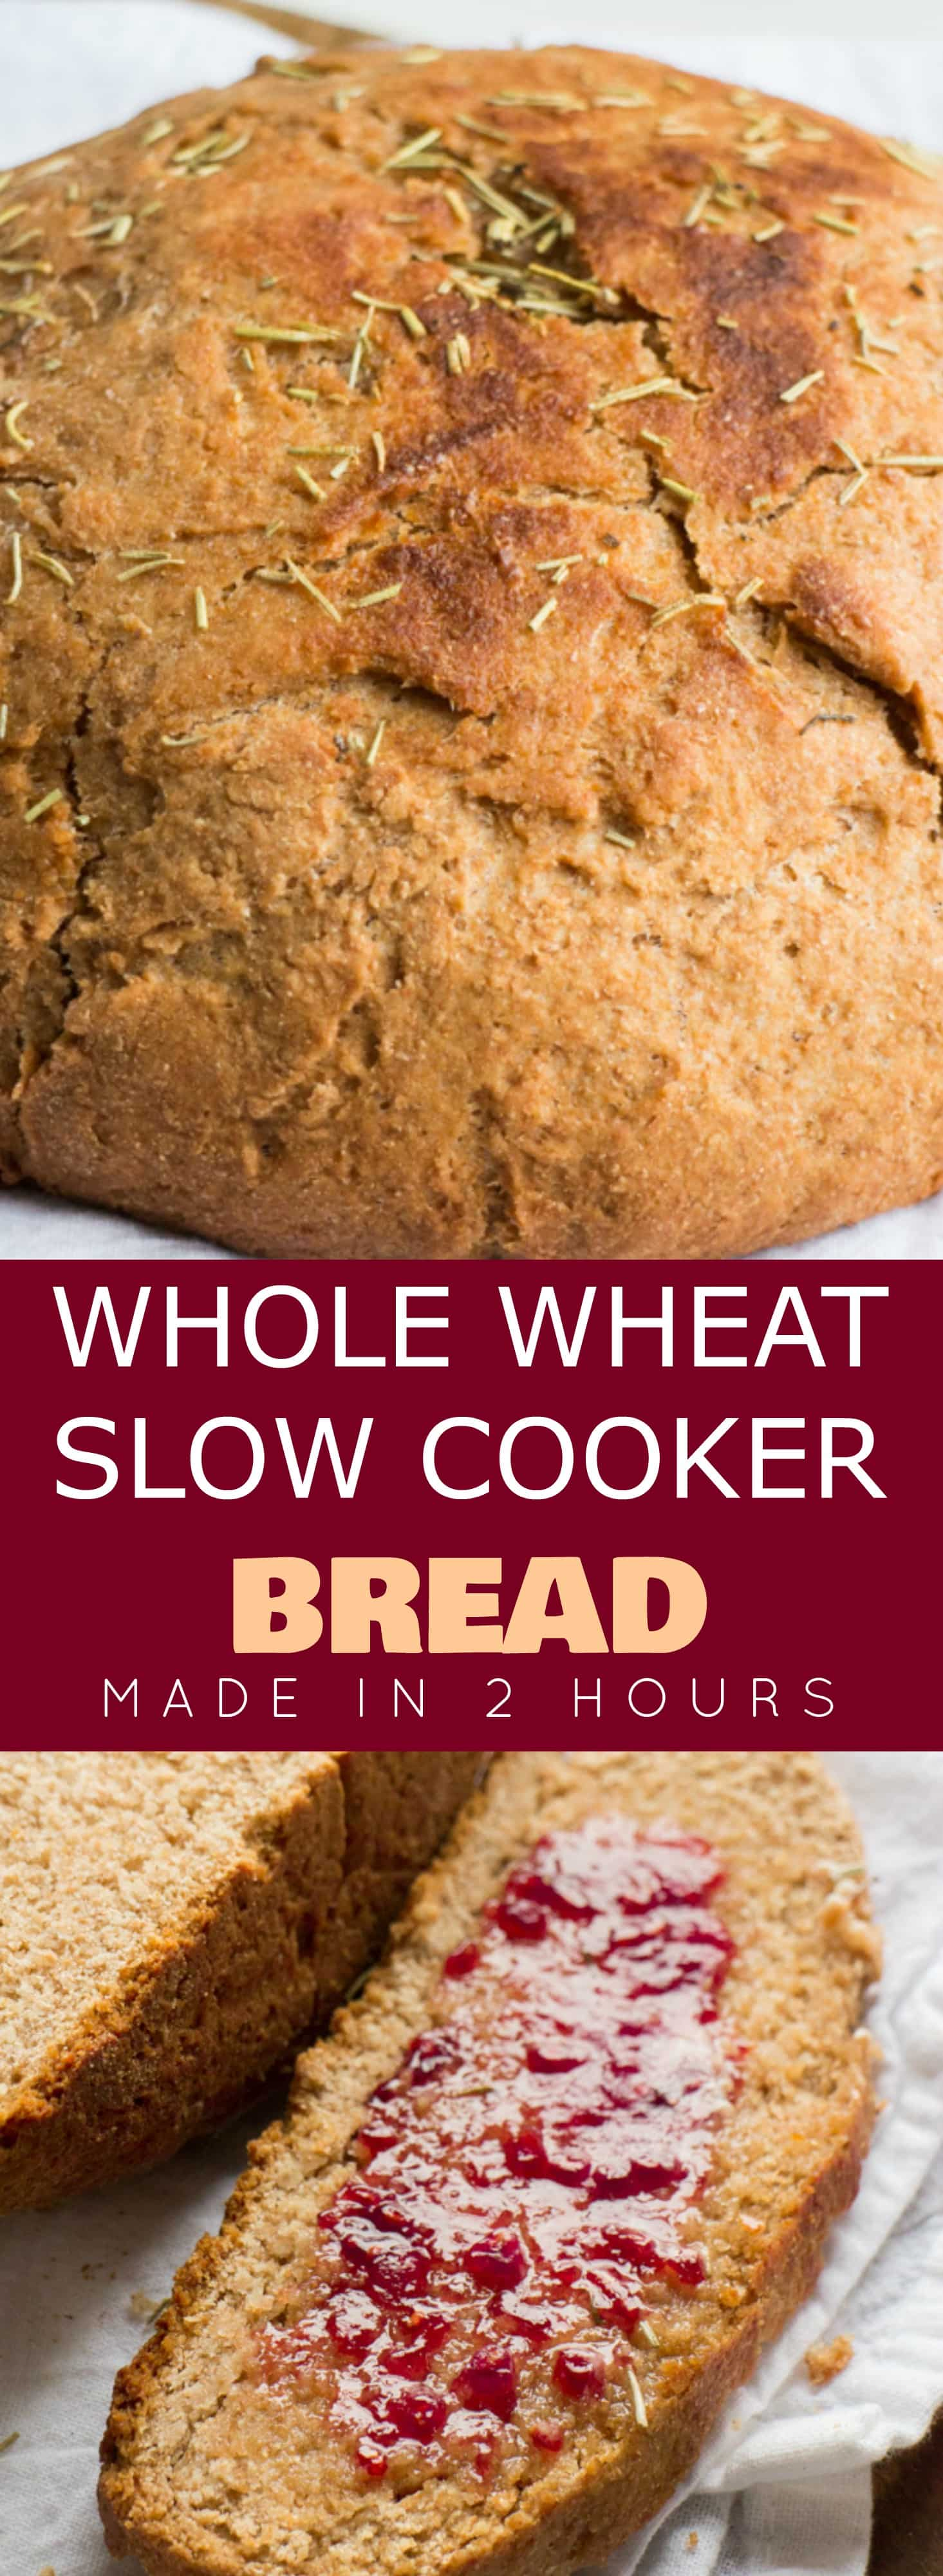 Homemade Whole Wheat SLOW COOKER Bread recipe that's so easy to make! This simple recipe is made in the crock pot and uses honey instead of sugar. This bread is healthy and great for clean eating! Use it for sandwiches or for breakfast, I love mine with a little butter and jam!